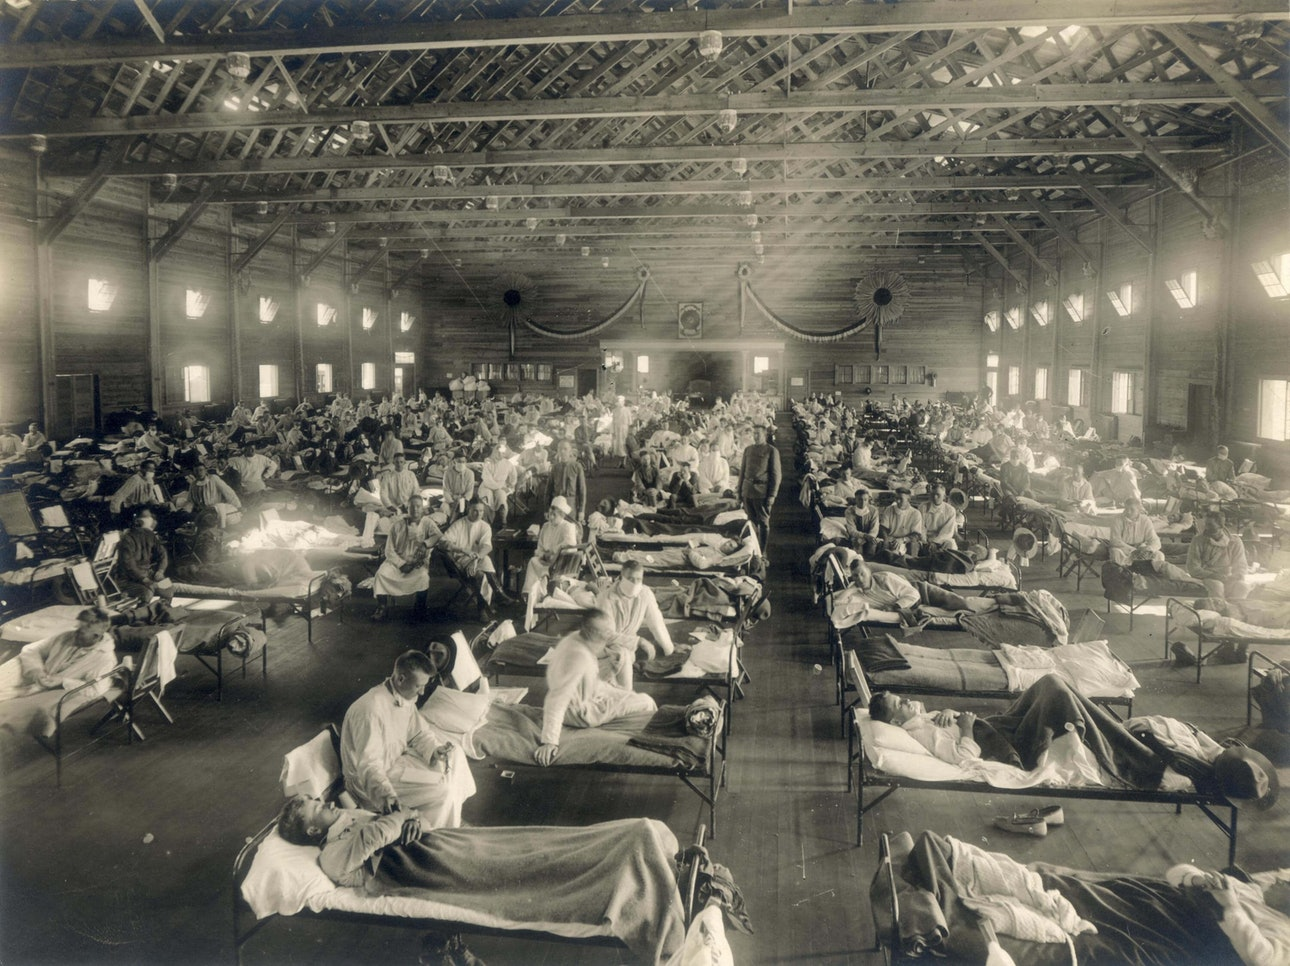 Emergency_hospital_during_Influenza_epidemic,_Camp_Funston,_Kansas_-_NCP_1603_covid_questions